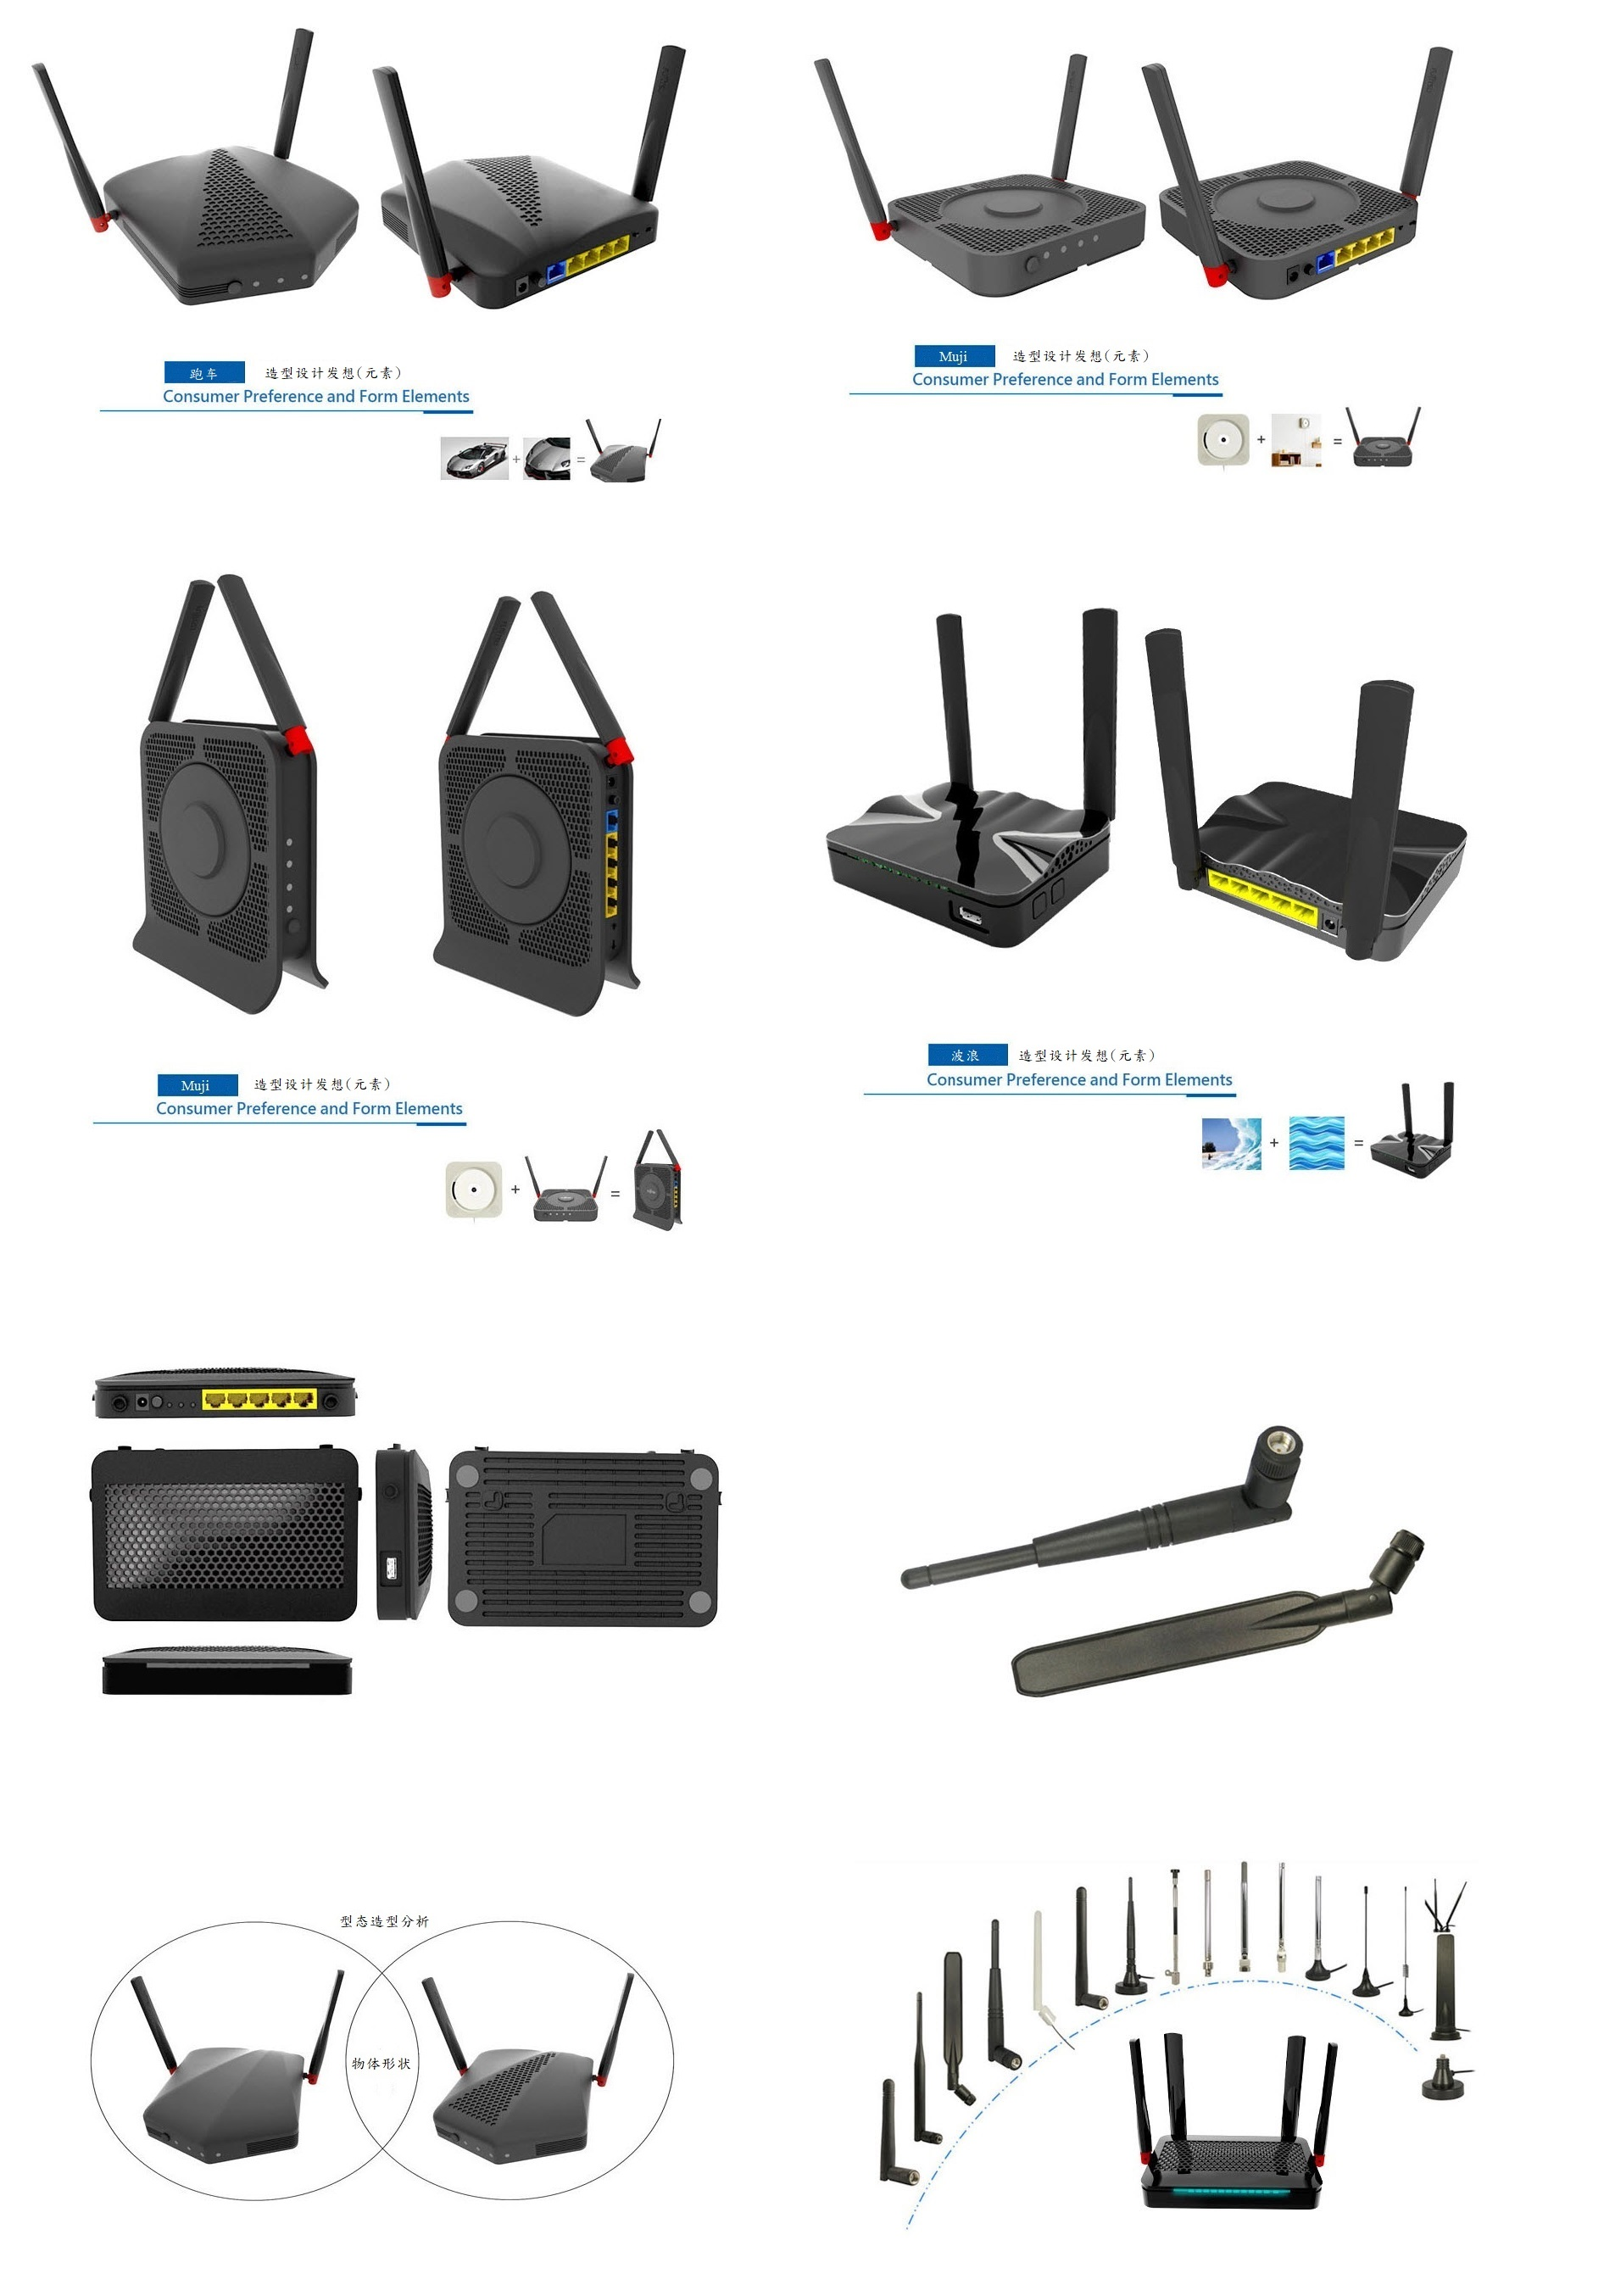 anntena-and-router_cn.jpg